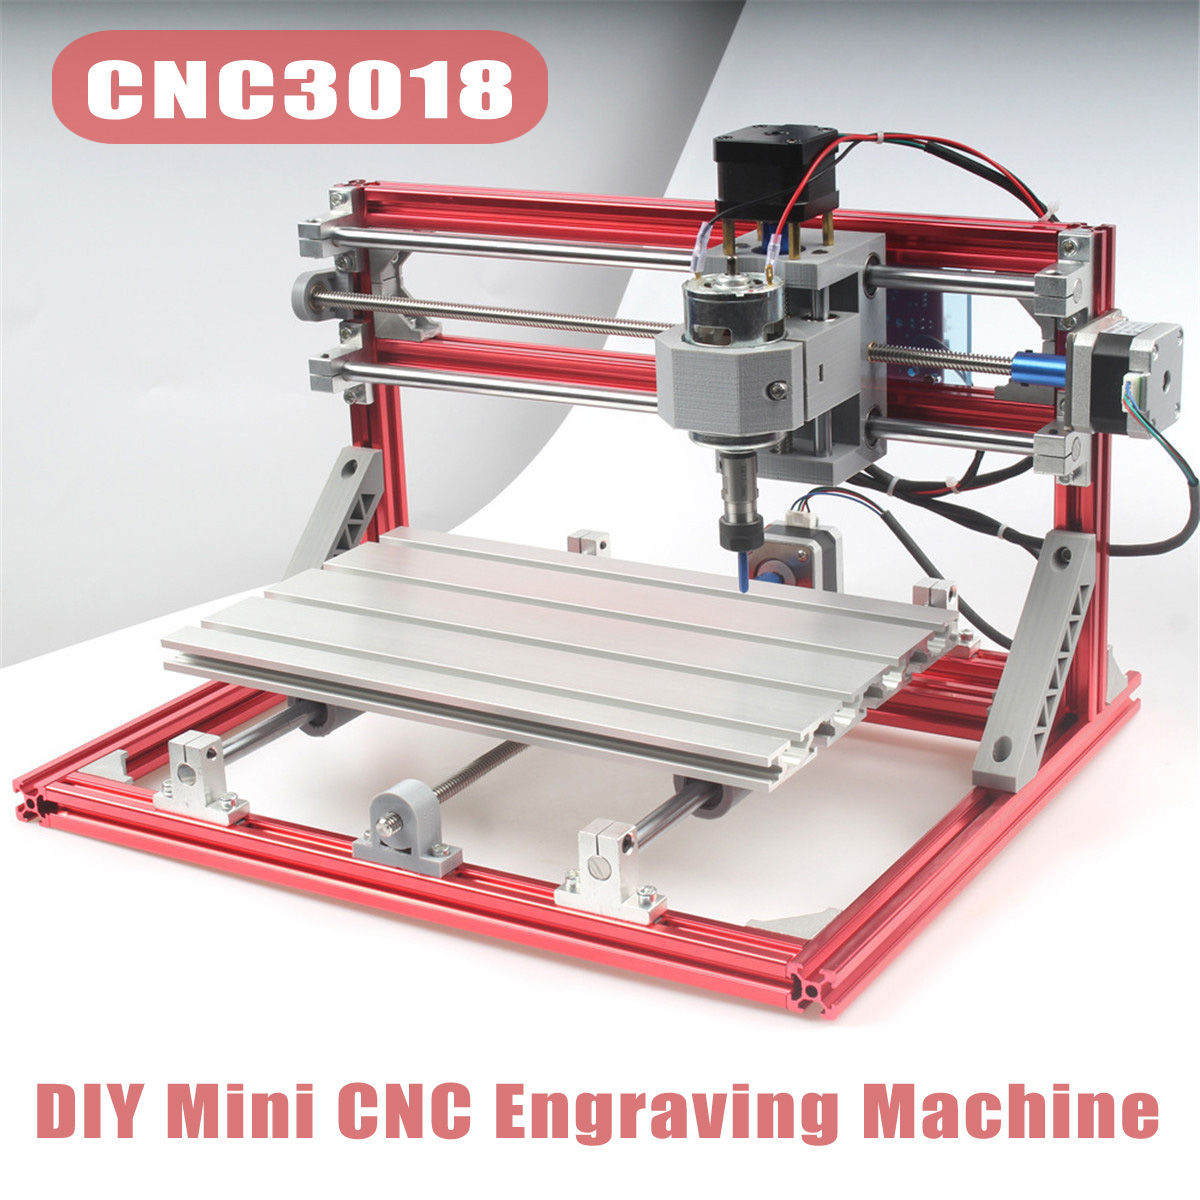 DIY Mini CNC 3018 Wood Engraving Carving PCB Milling Engraving Machine Router Engraver GRBL Control Aluminium and Plastic pcb milling machine diy 1309 cnc wood carving mini engraving machine pvc mill engraver support grbl control russia free tax